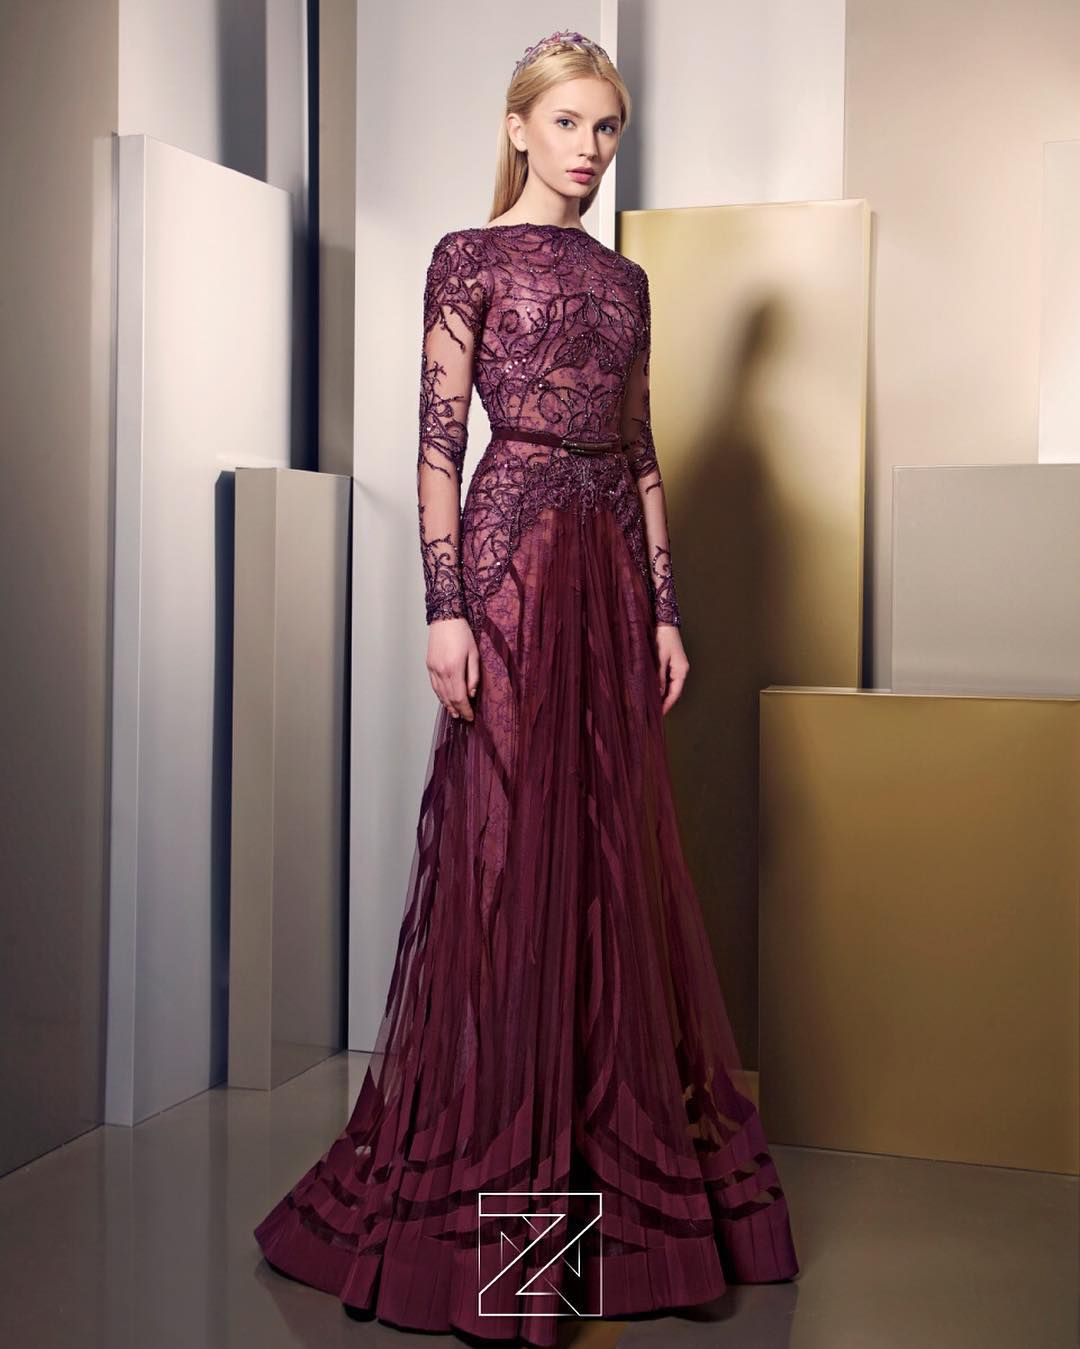 Instagram h i g h f a s h i o n pinterest couture collection